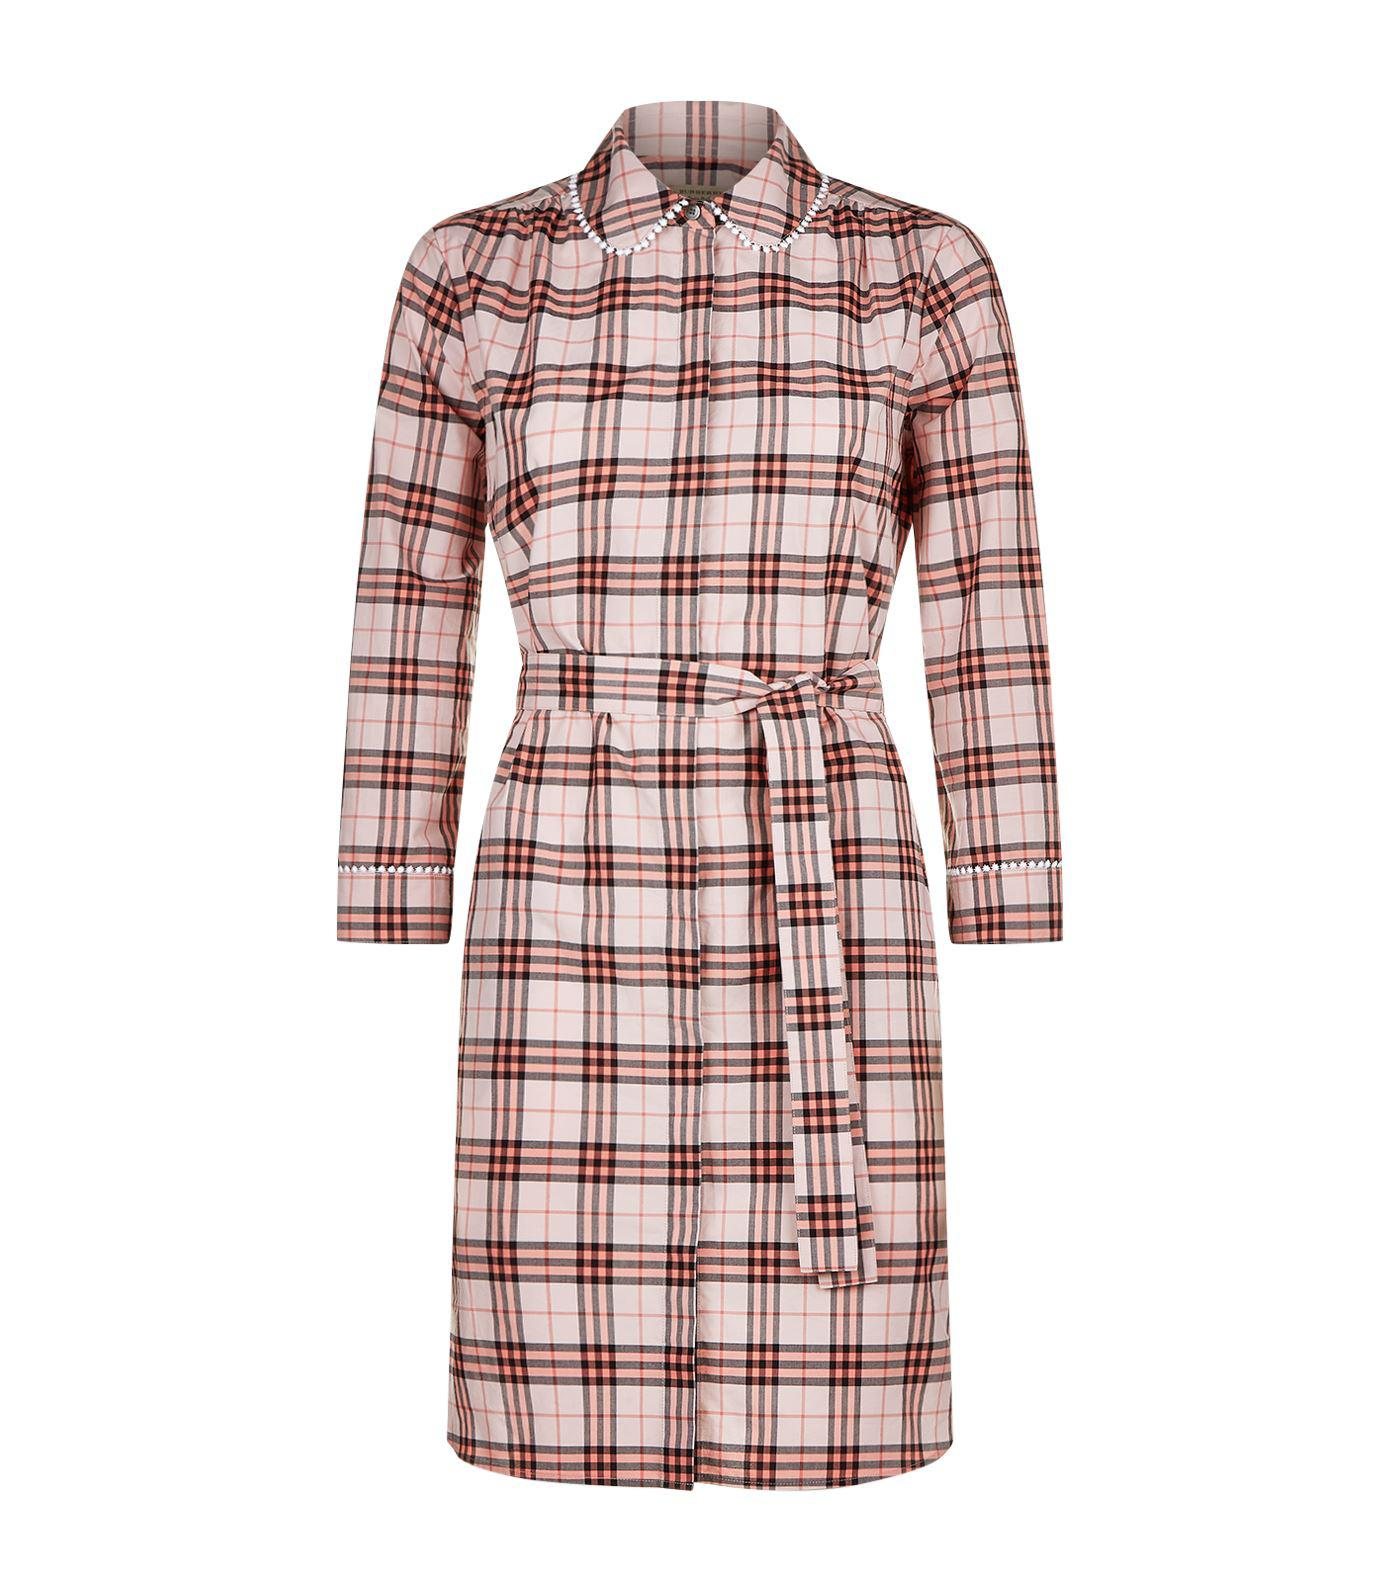 Lyst Burberry Check Shirt Dress In Pink